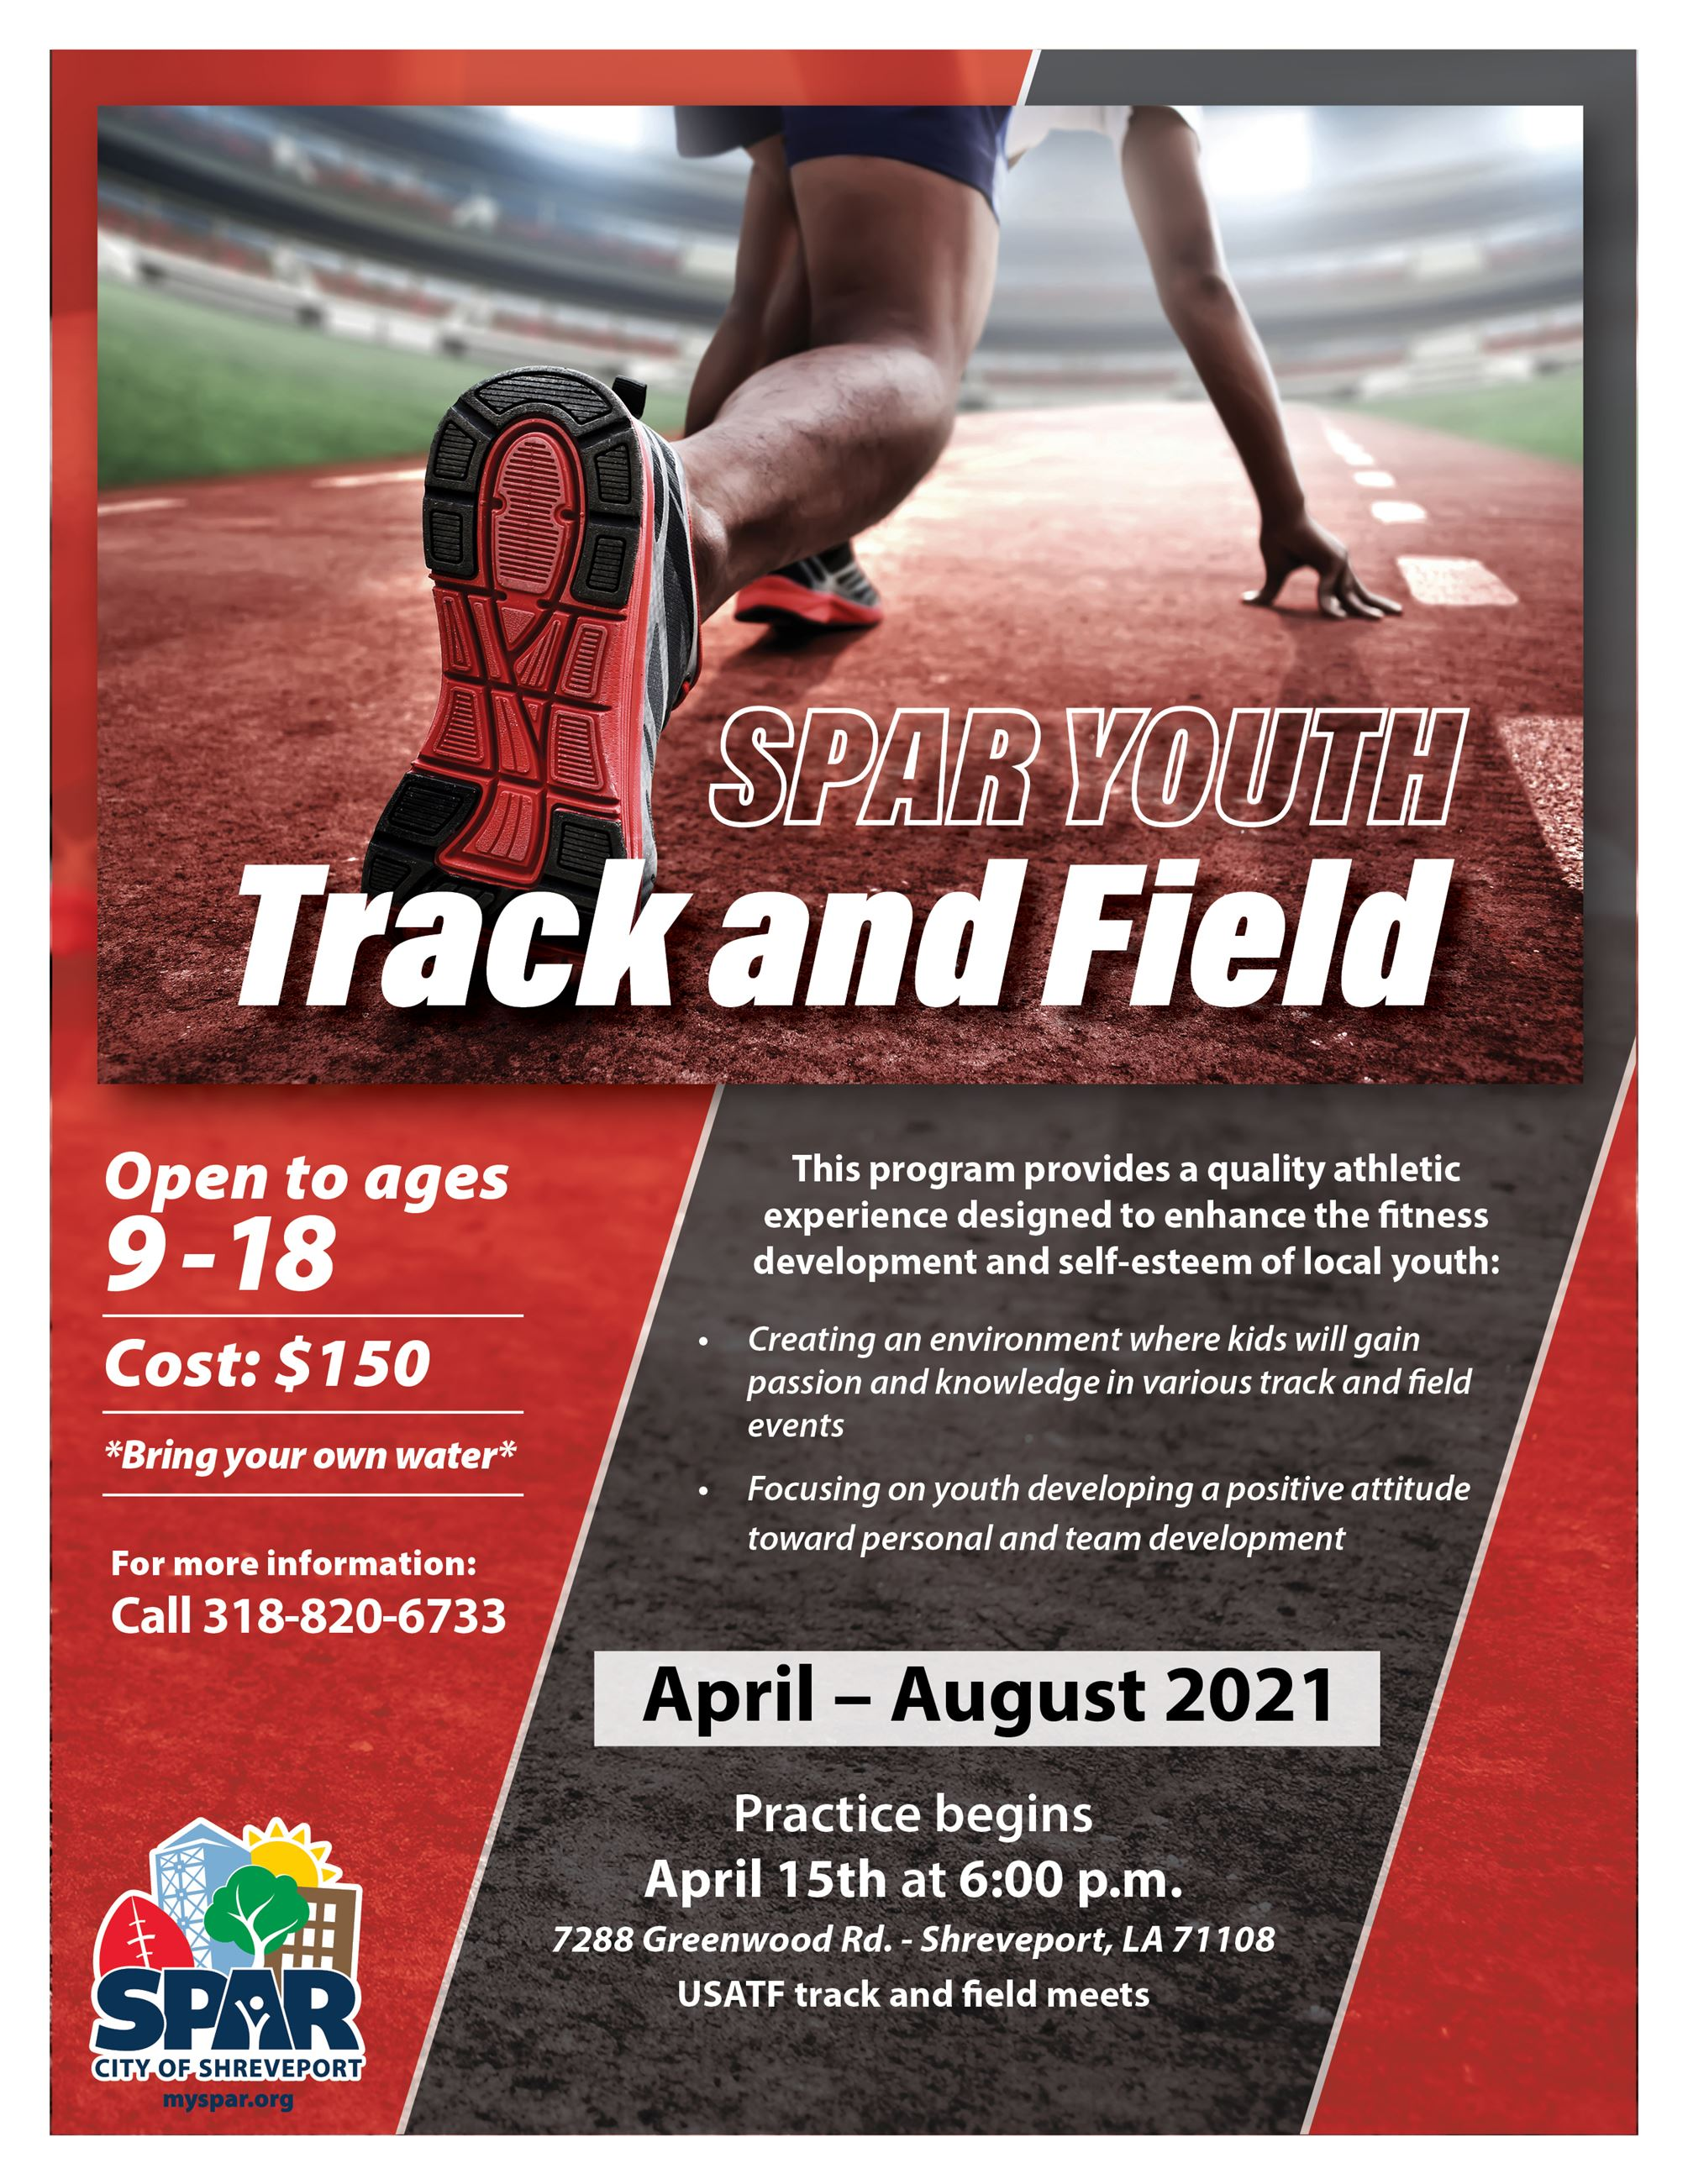 2021 Track and Field practice